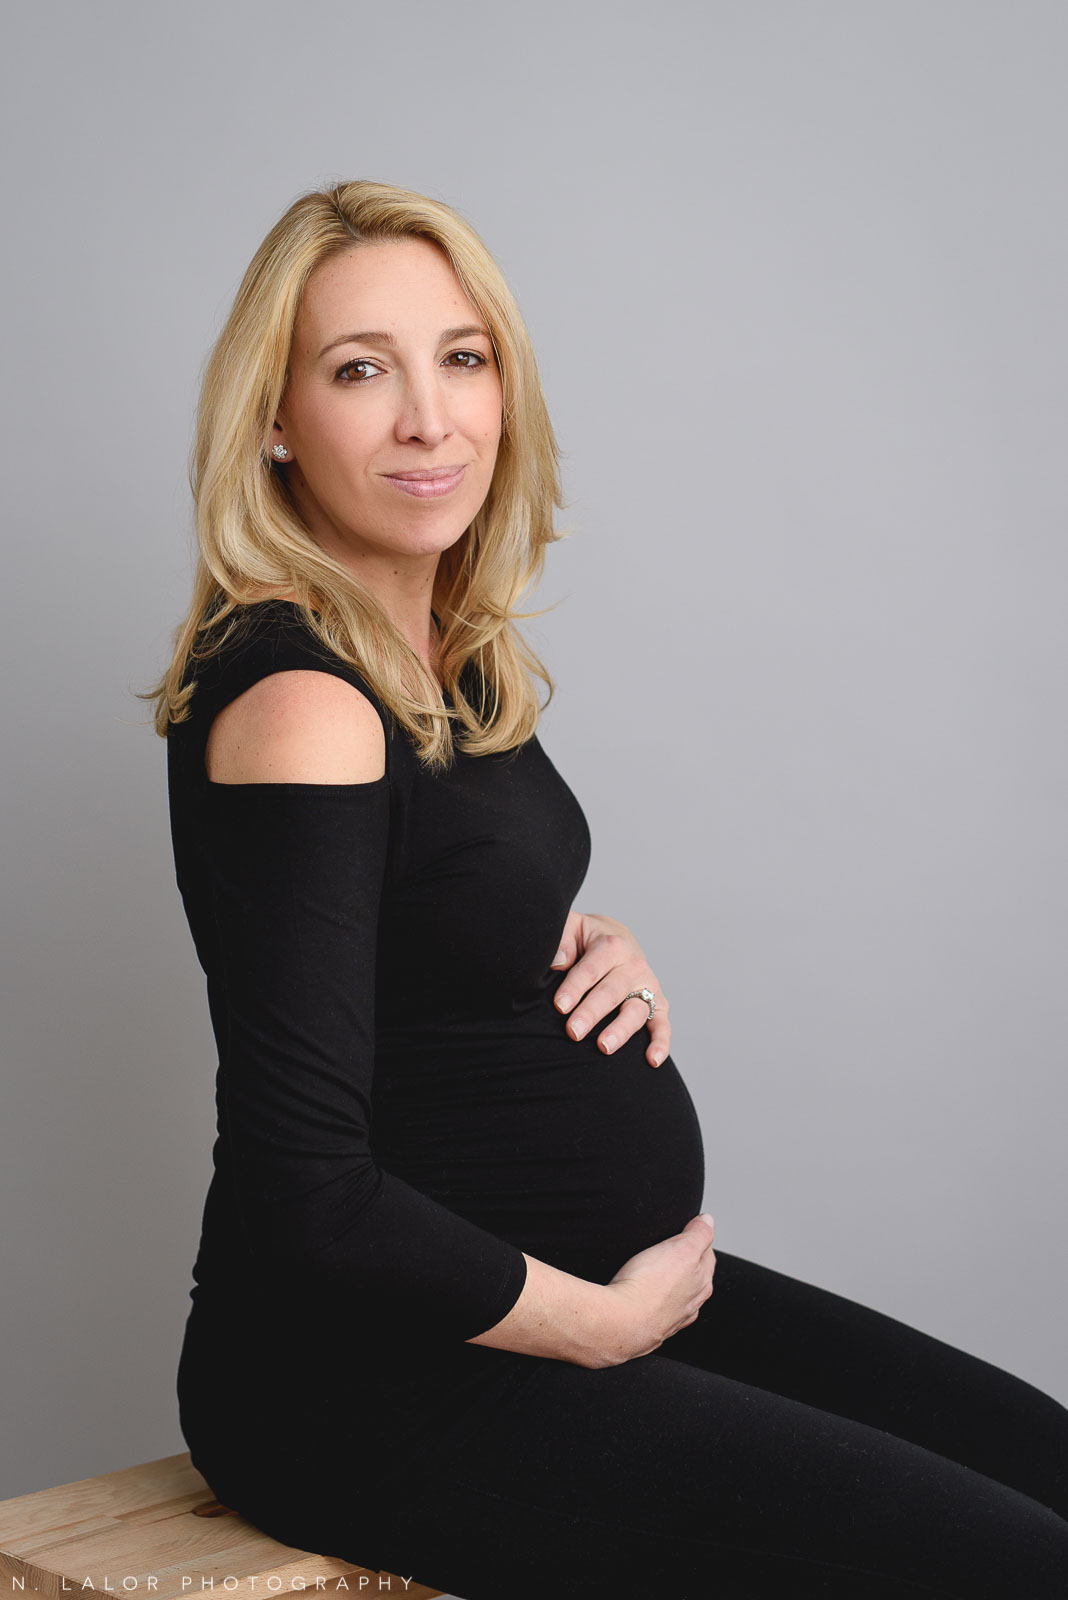 """Gorgeous, simple pregnancy portrait. Maternity """"Mom and Me"""" photo session by N. Lalor Photography. Studio located in Greenwich Connecticut."""